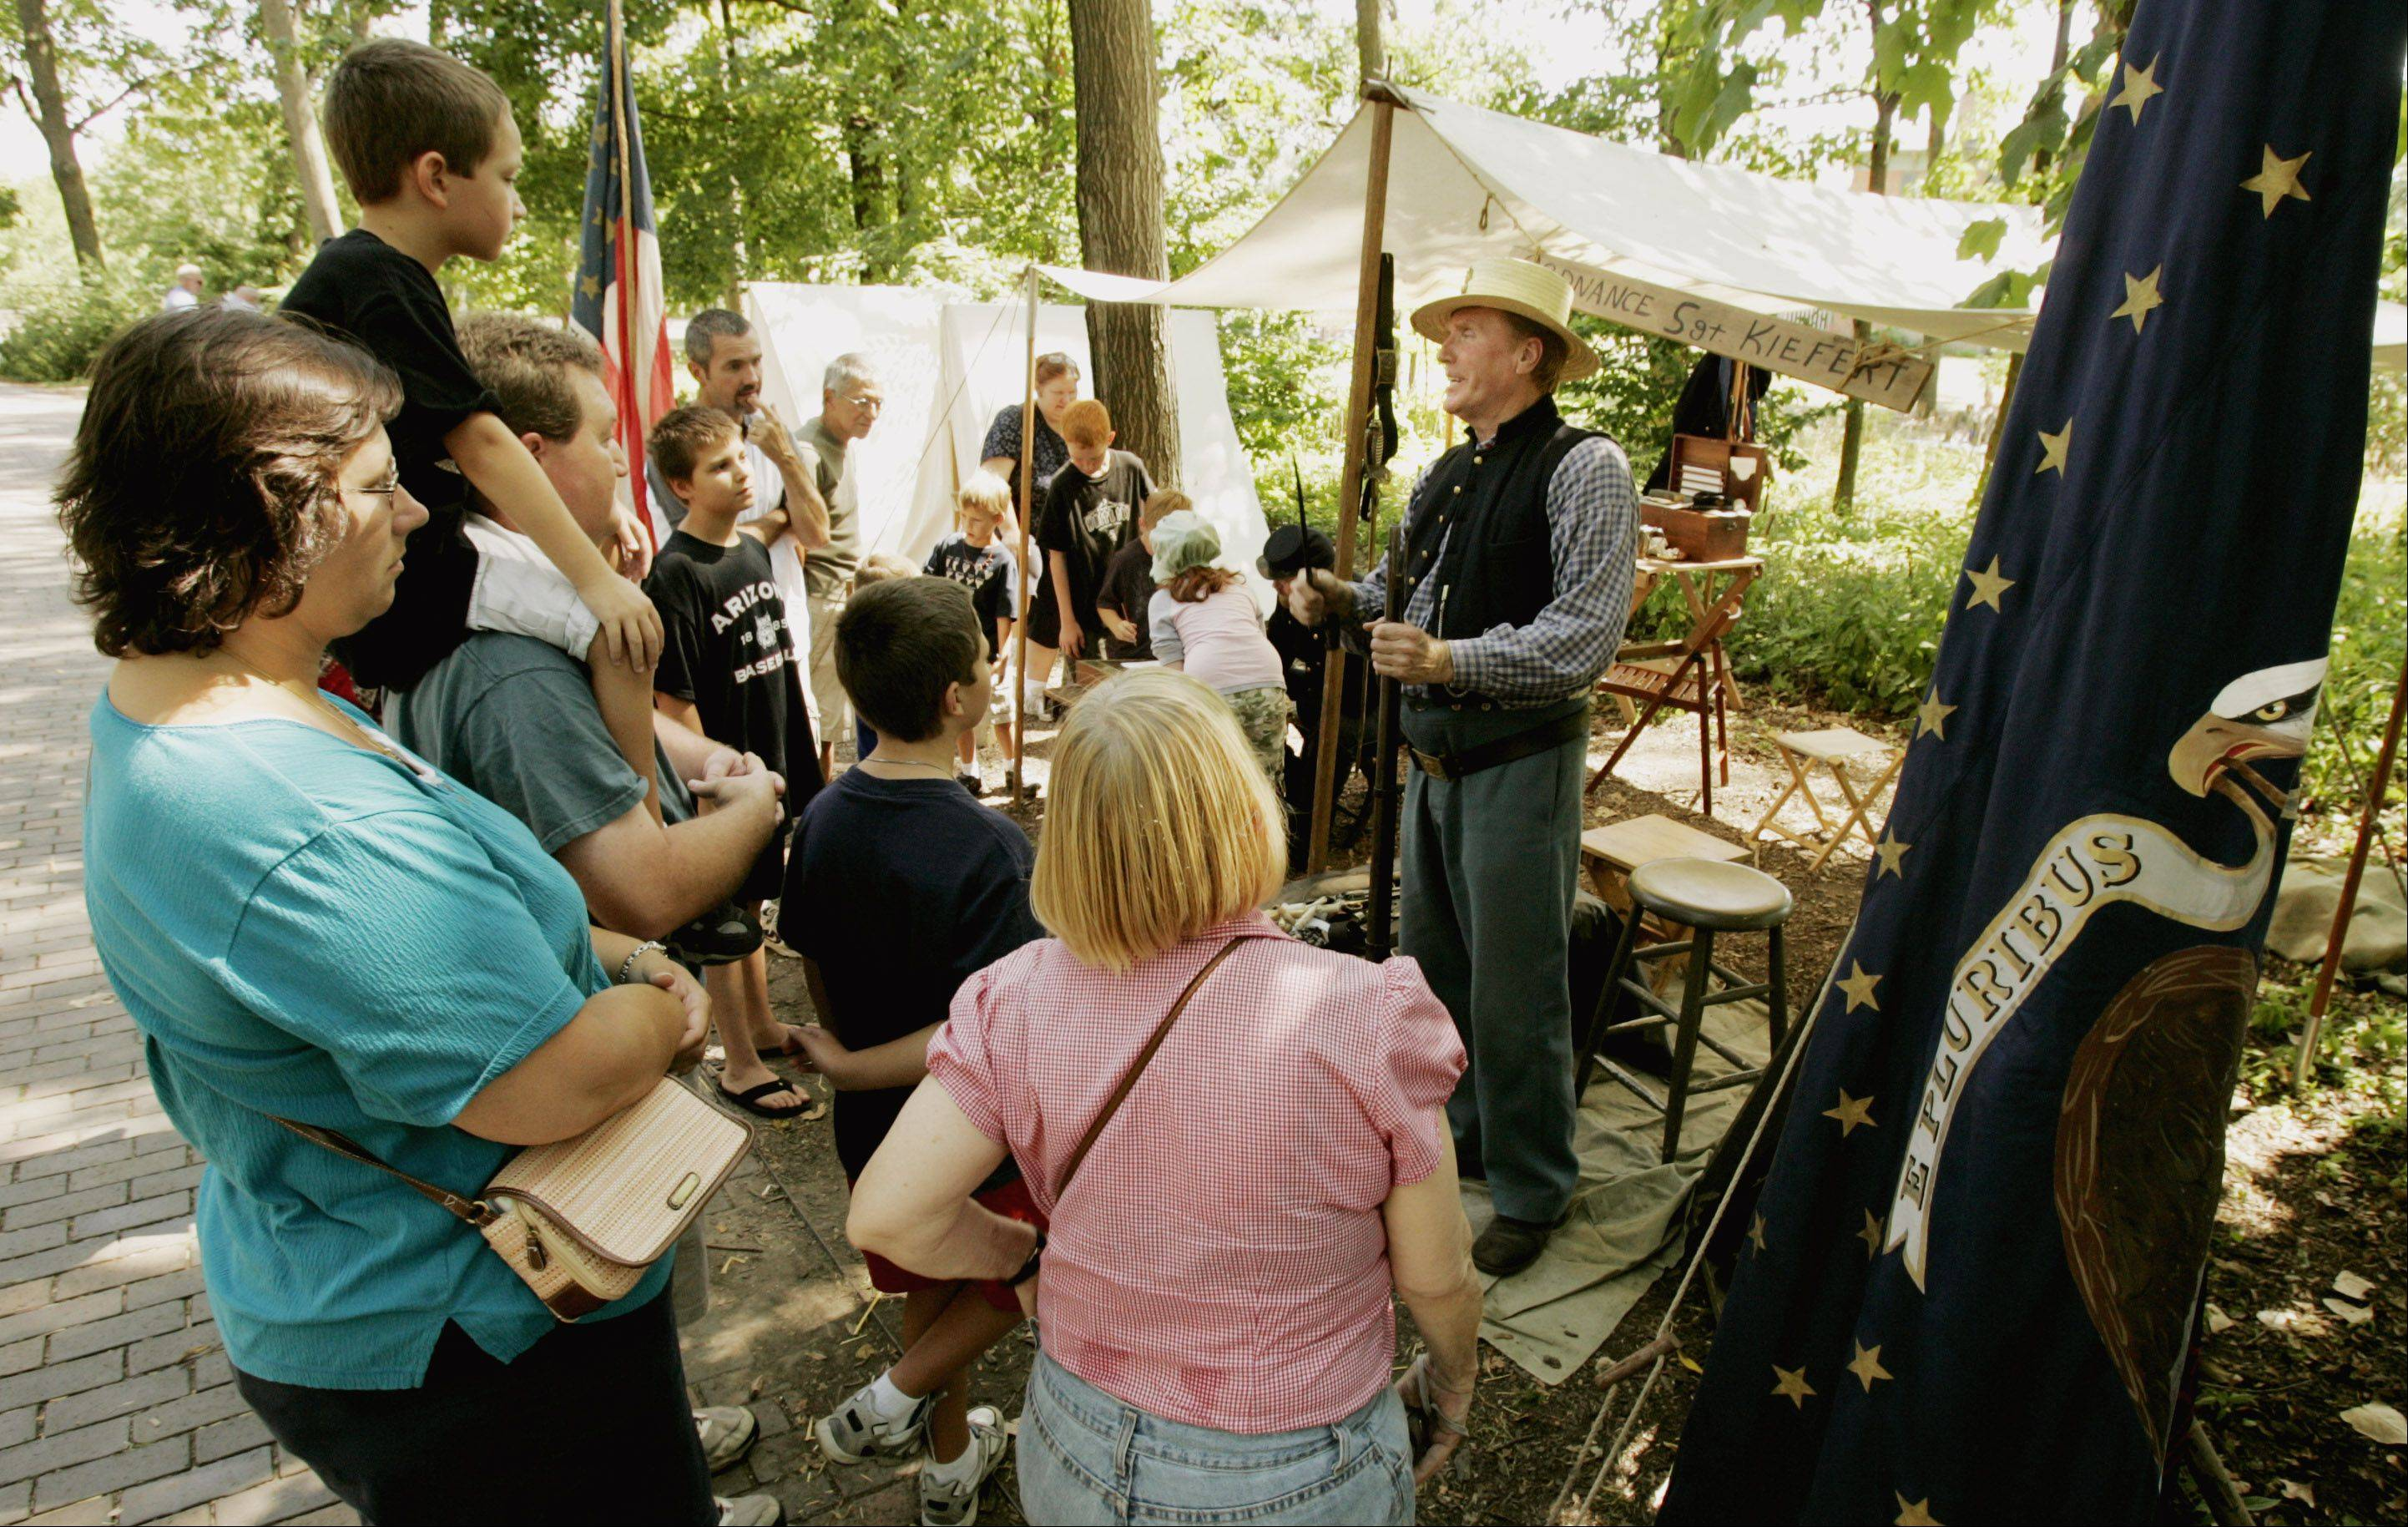 "People are often amazed at how life in the Civil War era was both really different in some ways and really similar in others to life today, said Leslie Goddard, executive director at Graue Mill and Museum. ""A lot of military camp was about making friendships and making do with what you have, so that's the same,"" she said."